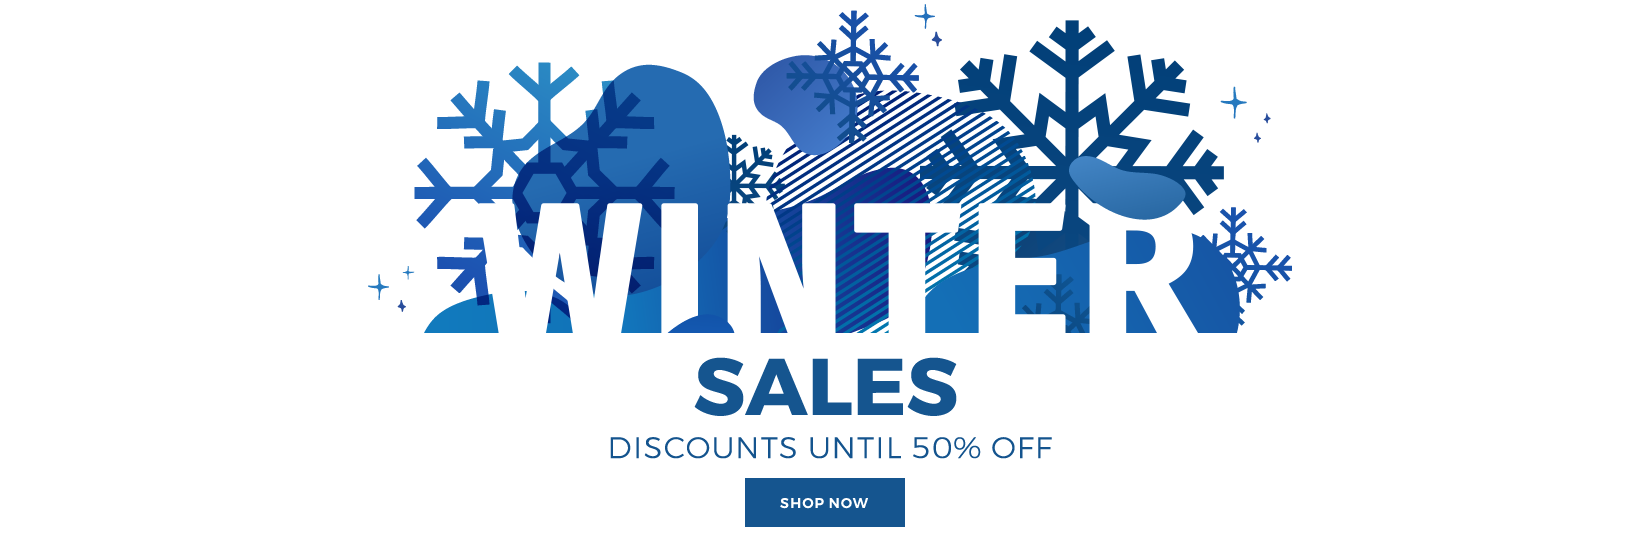 WINTER SALES DISCOUNTS UNTIL 50% OFF EXPIRES ON 31.01